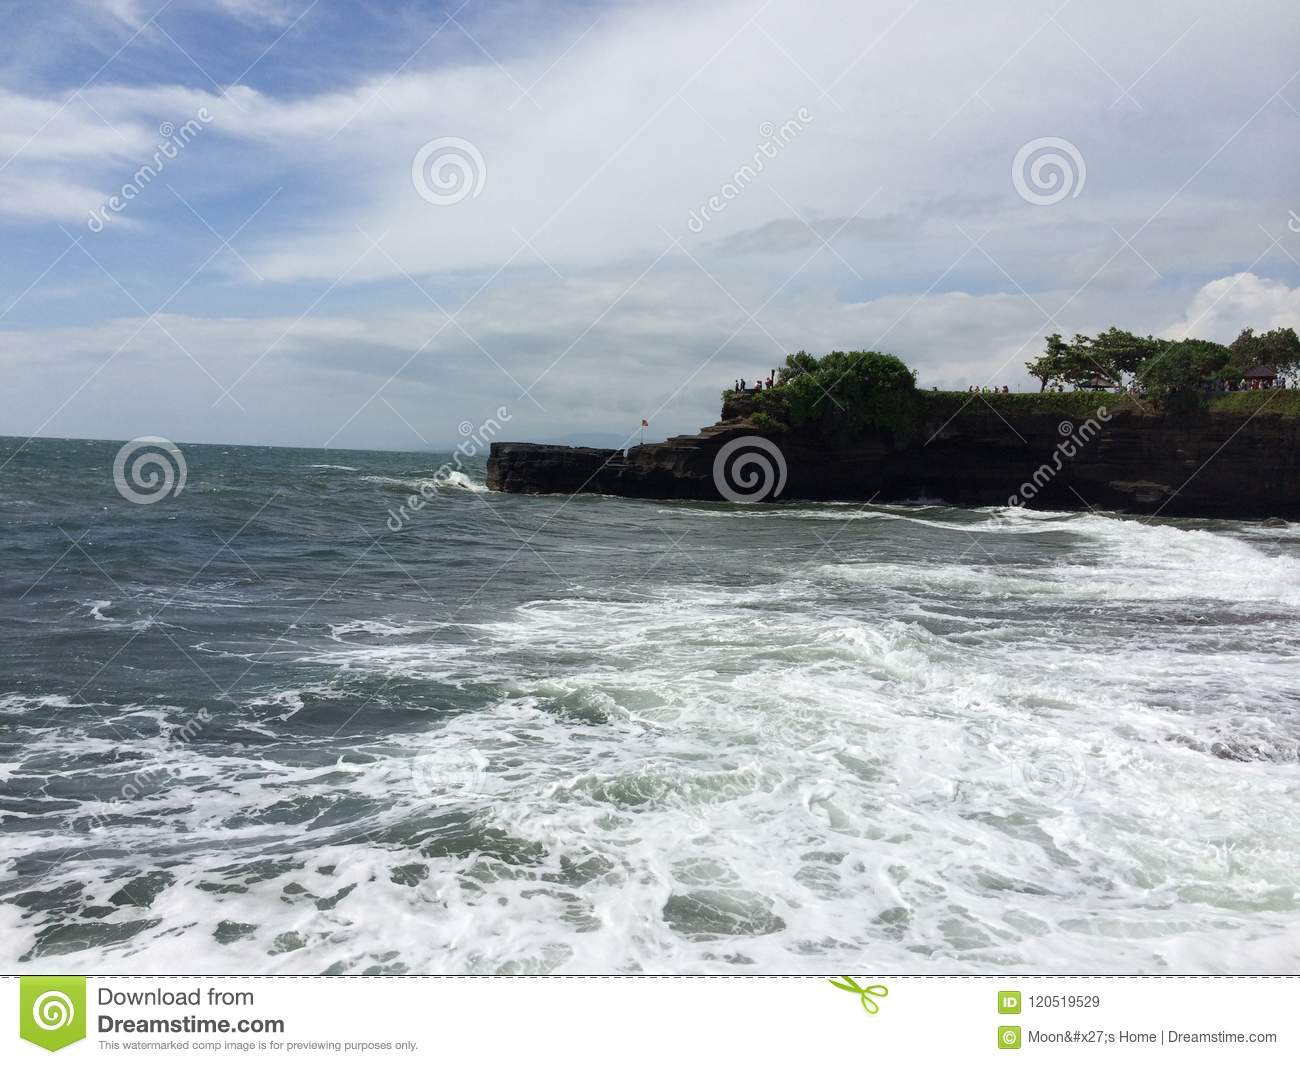 Beautiful beaches, southeast Asian scenery, photography pictures